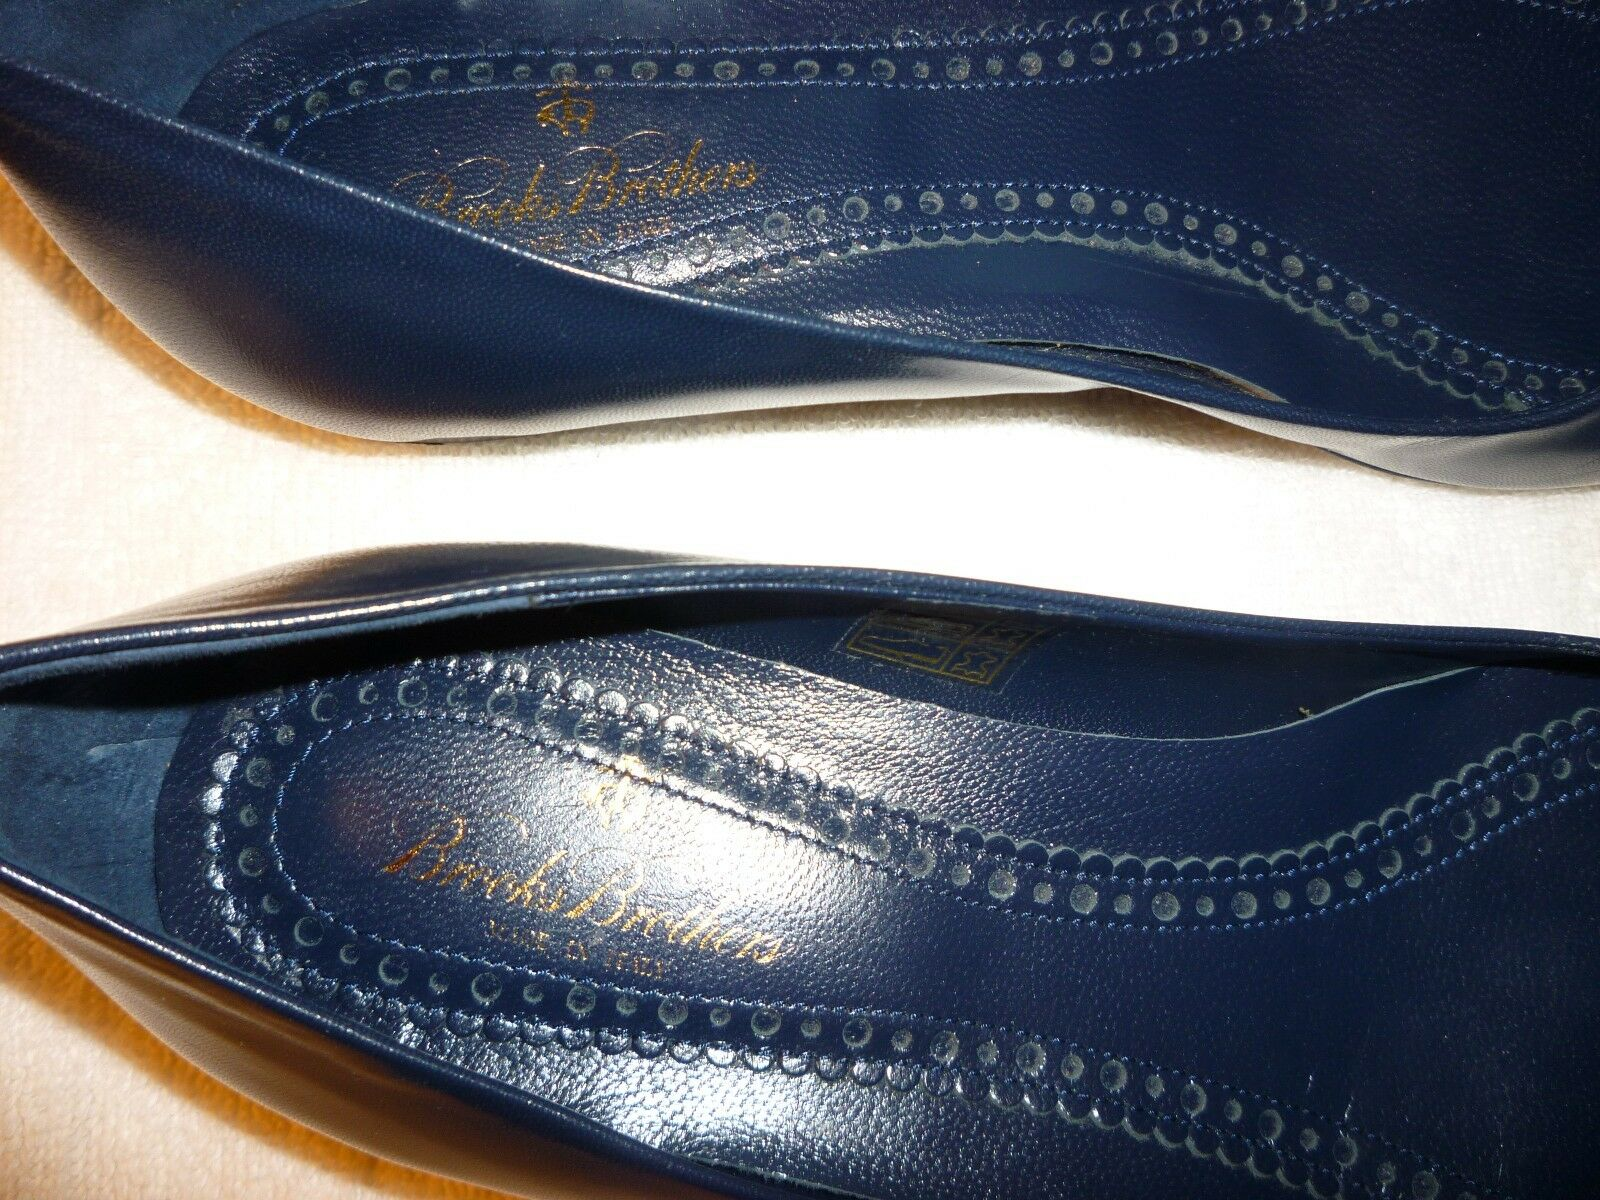 BROOKS BrossoHERS donna donna donna NAVY blu FLATS WITH BRONZE BUCKLE-PRE-OWNED 23420c